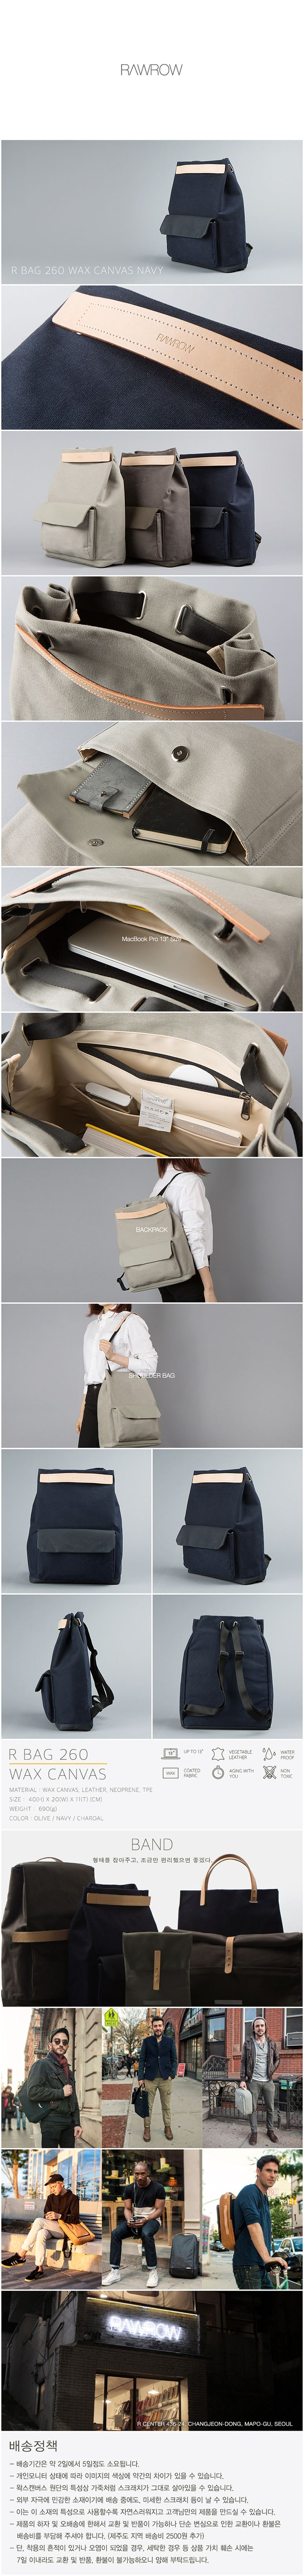 RAWROW SHOP now that is a chic sleek really well designed bag! It can switch can and forth between backpack and over the shoulder which is PERFECT for me and my back problems!